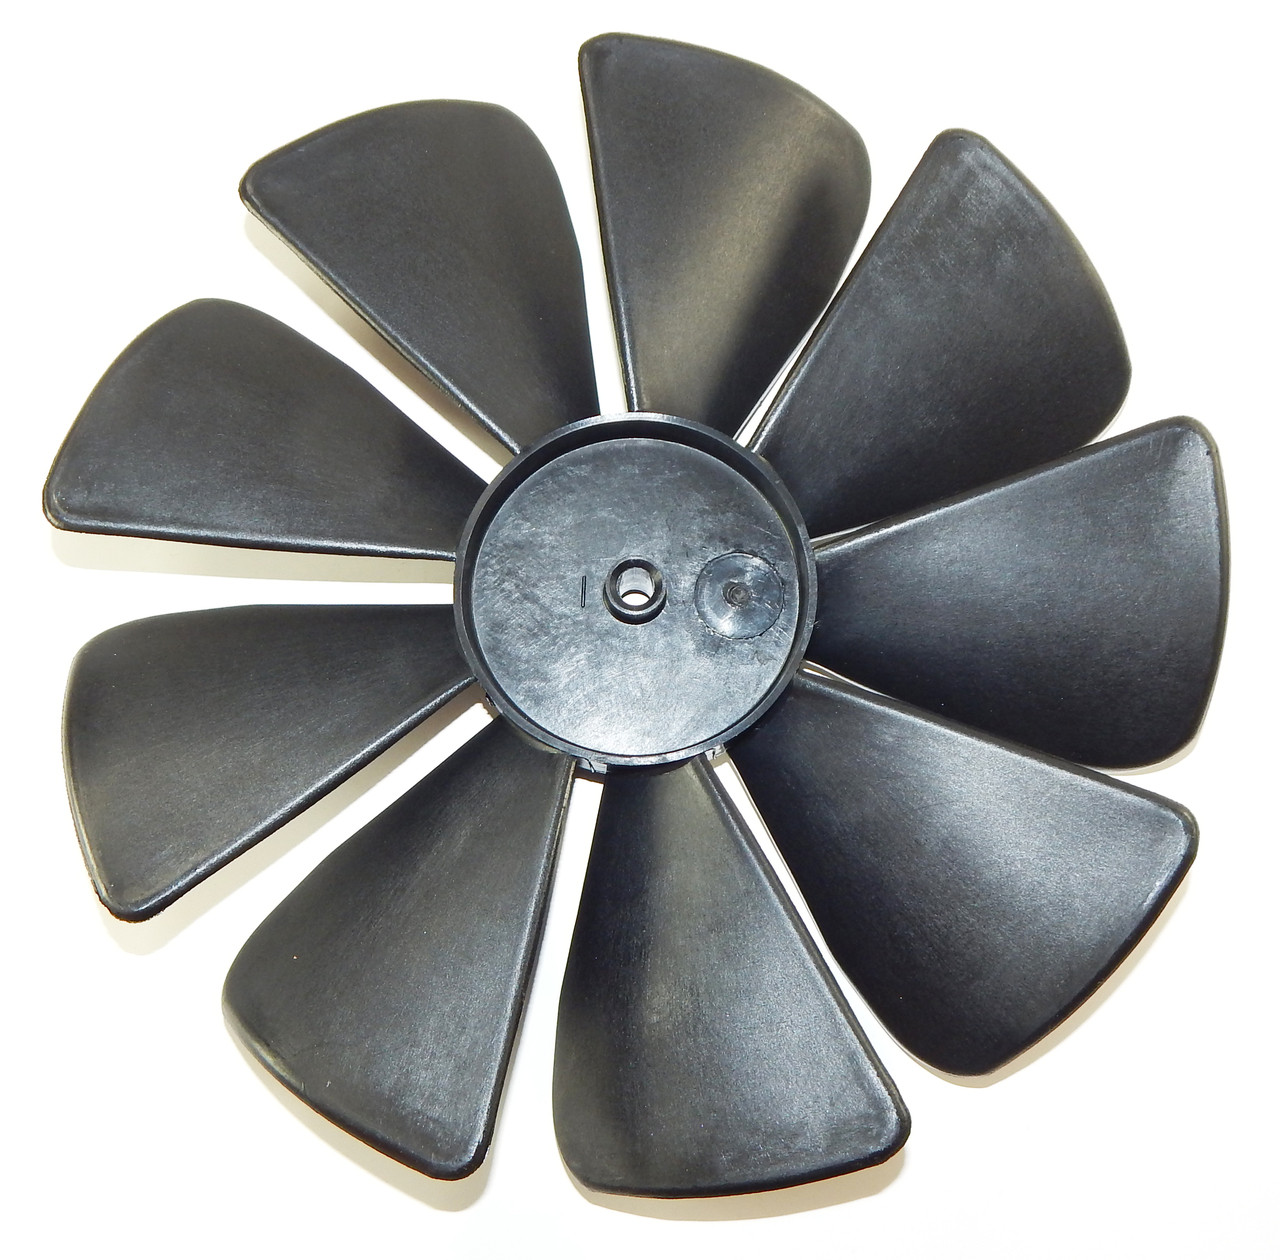 Broan Replacement 9 5 Quot Vent Fan Blade 99020271